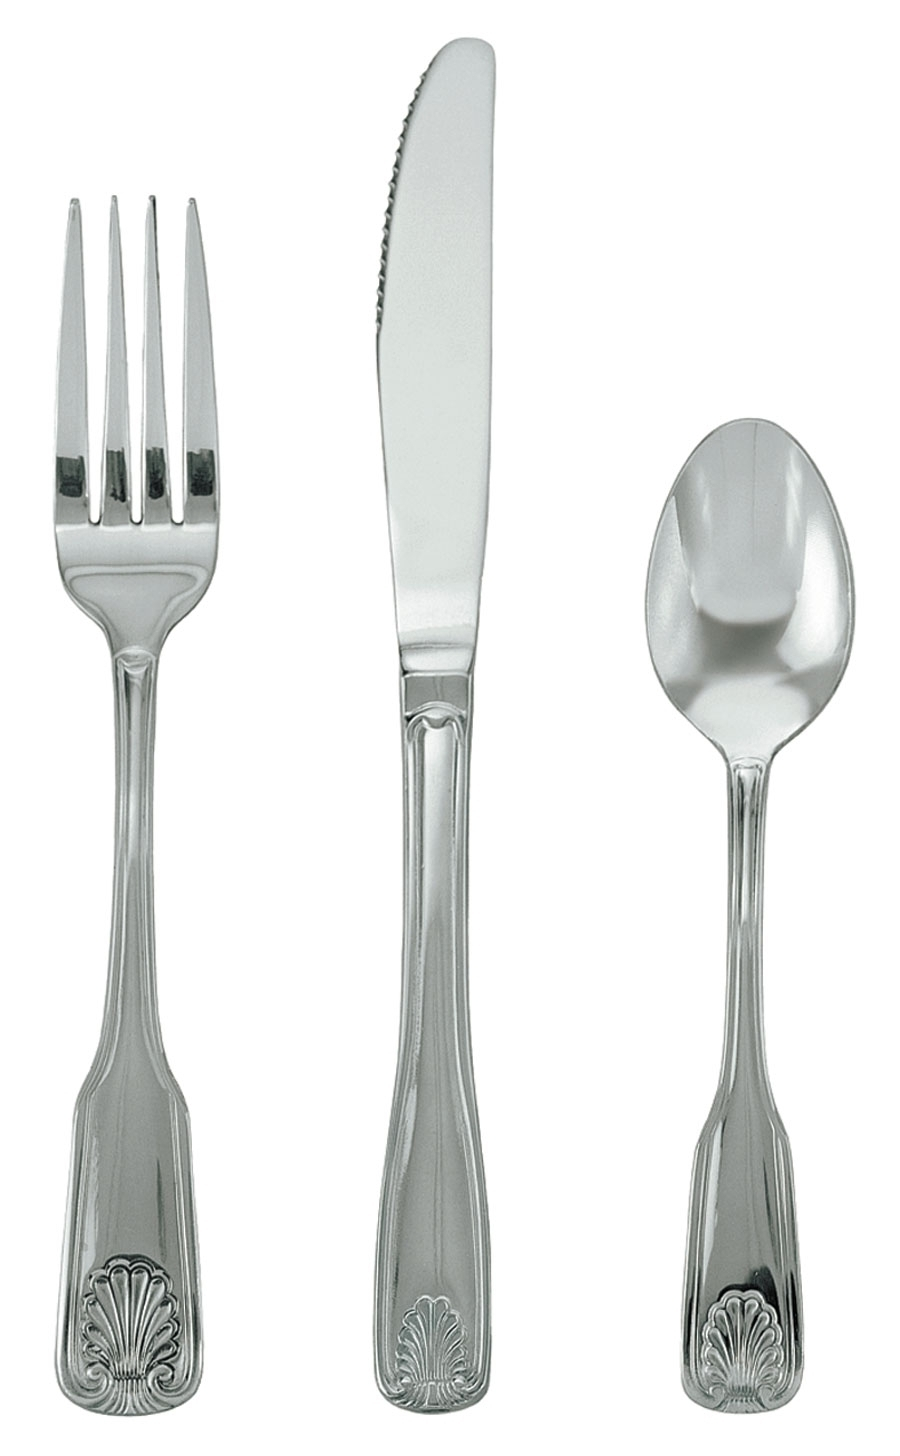 SH-502-N Update International - Bouillon Spoon, 18/0 stainless steel, mirror polish, extra heavy weight